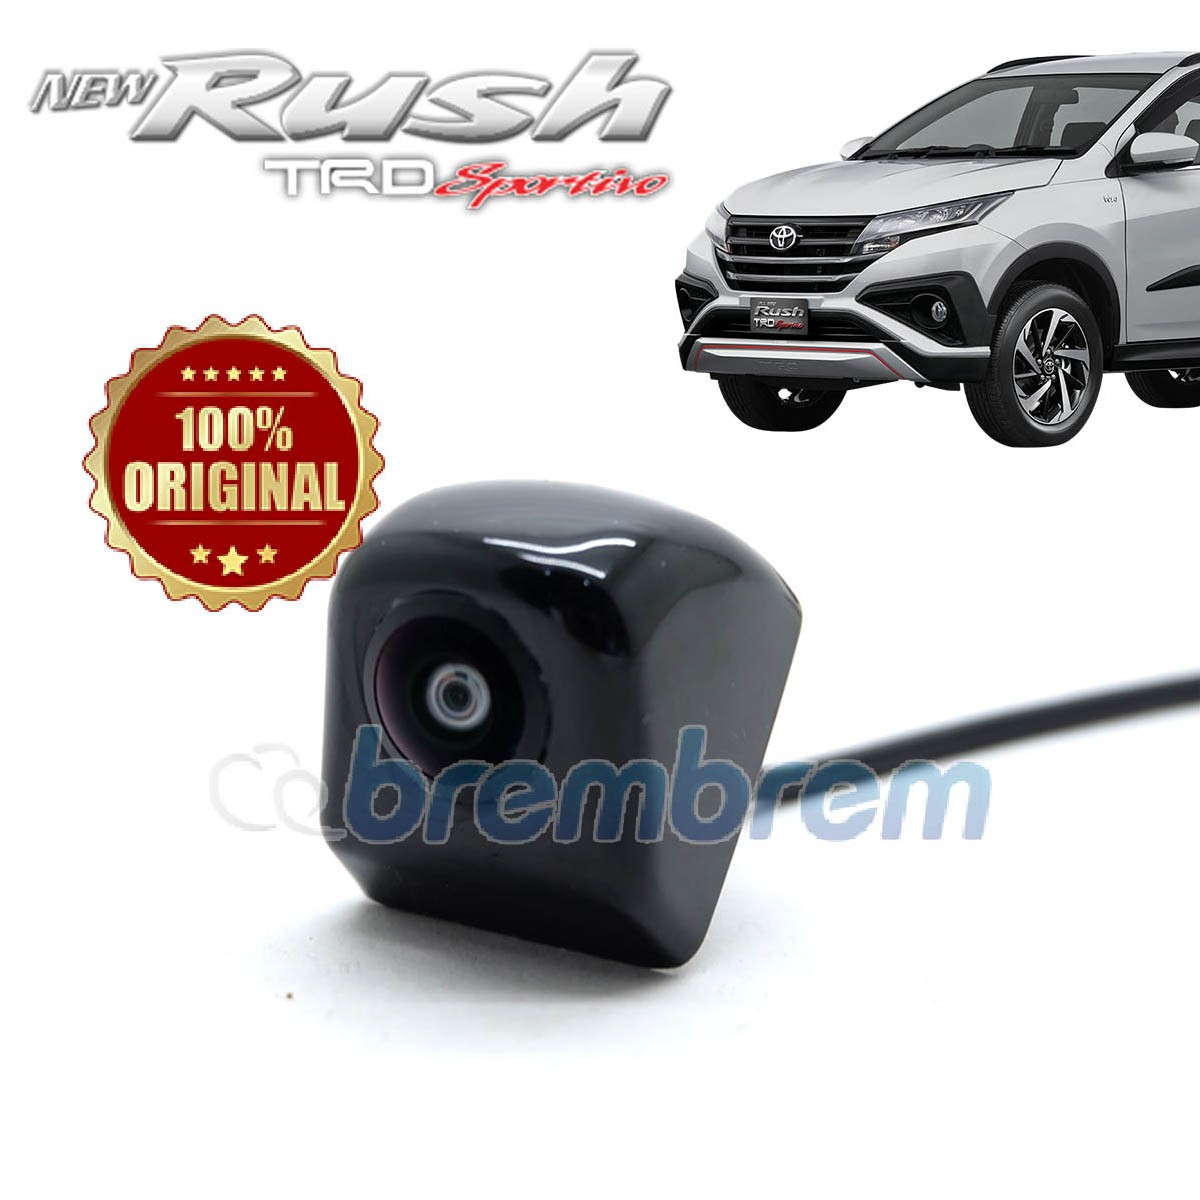 KAMERA MUNDUR HIRO - TOYOTA ALL NEW RUSH